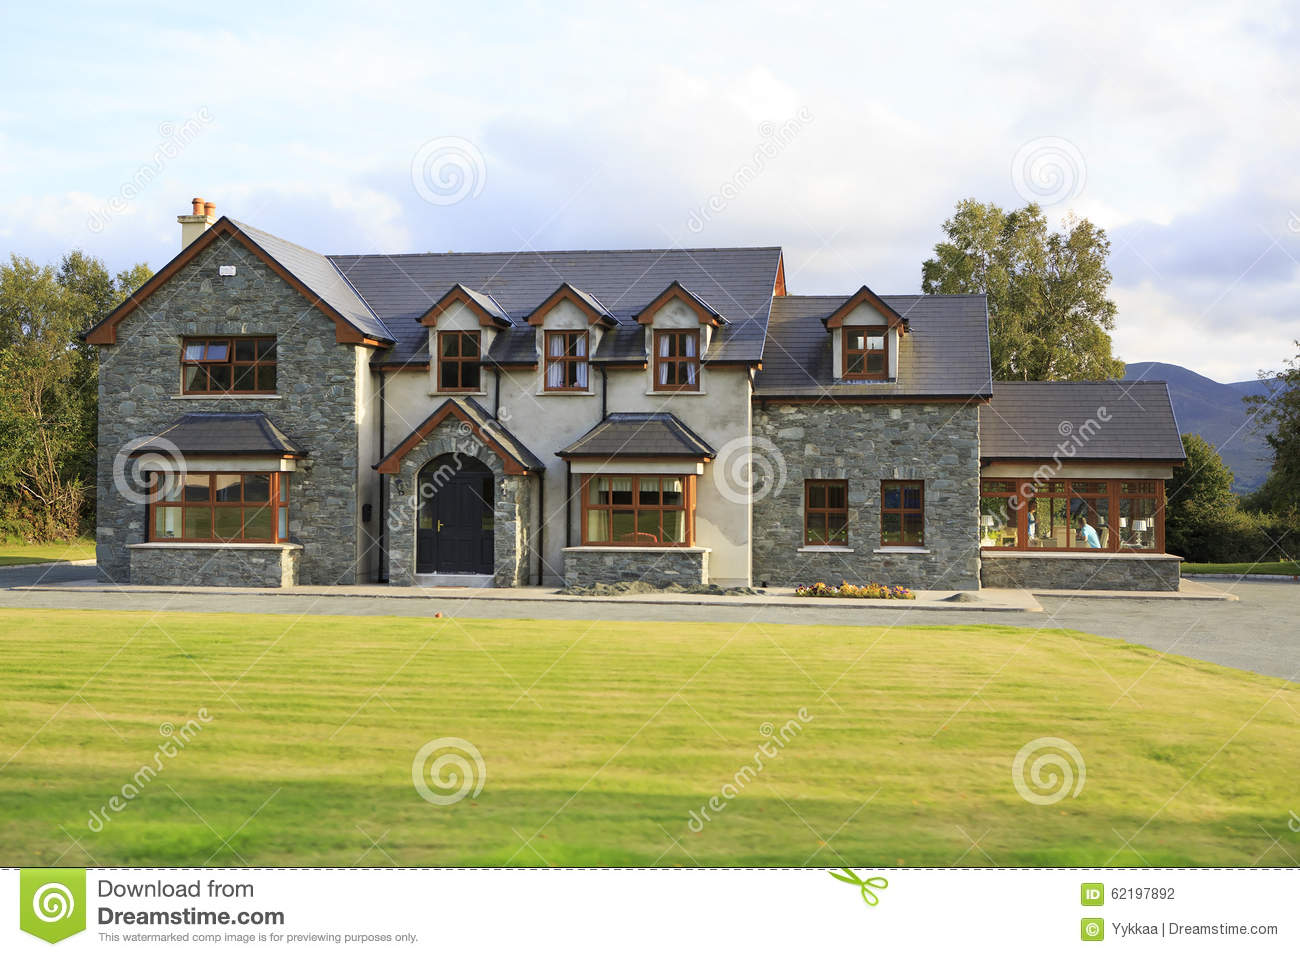 Beautiful residential country houses in ireland editorial for Beautiful residential houses